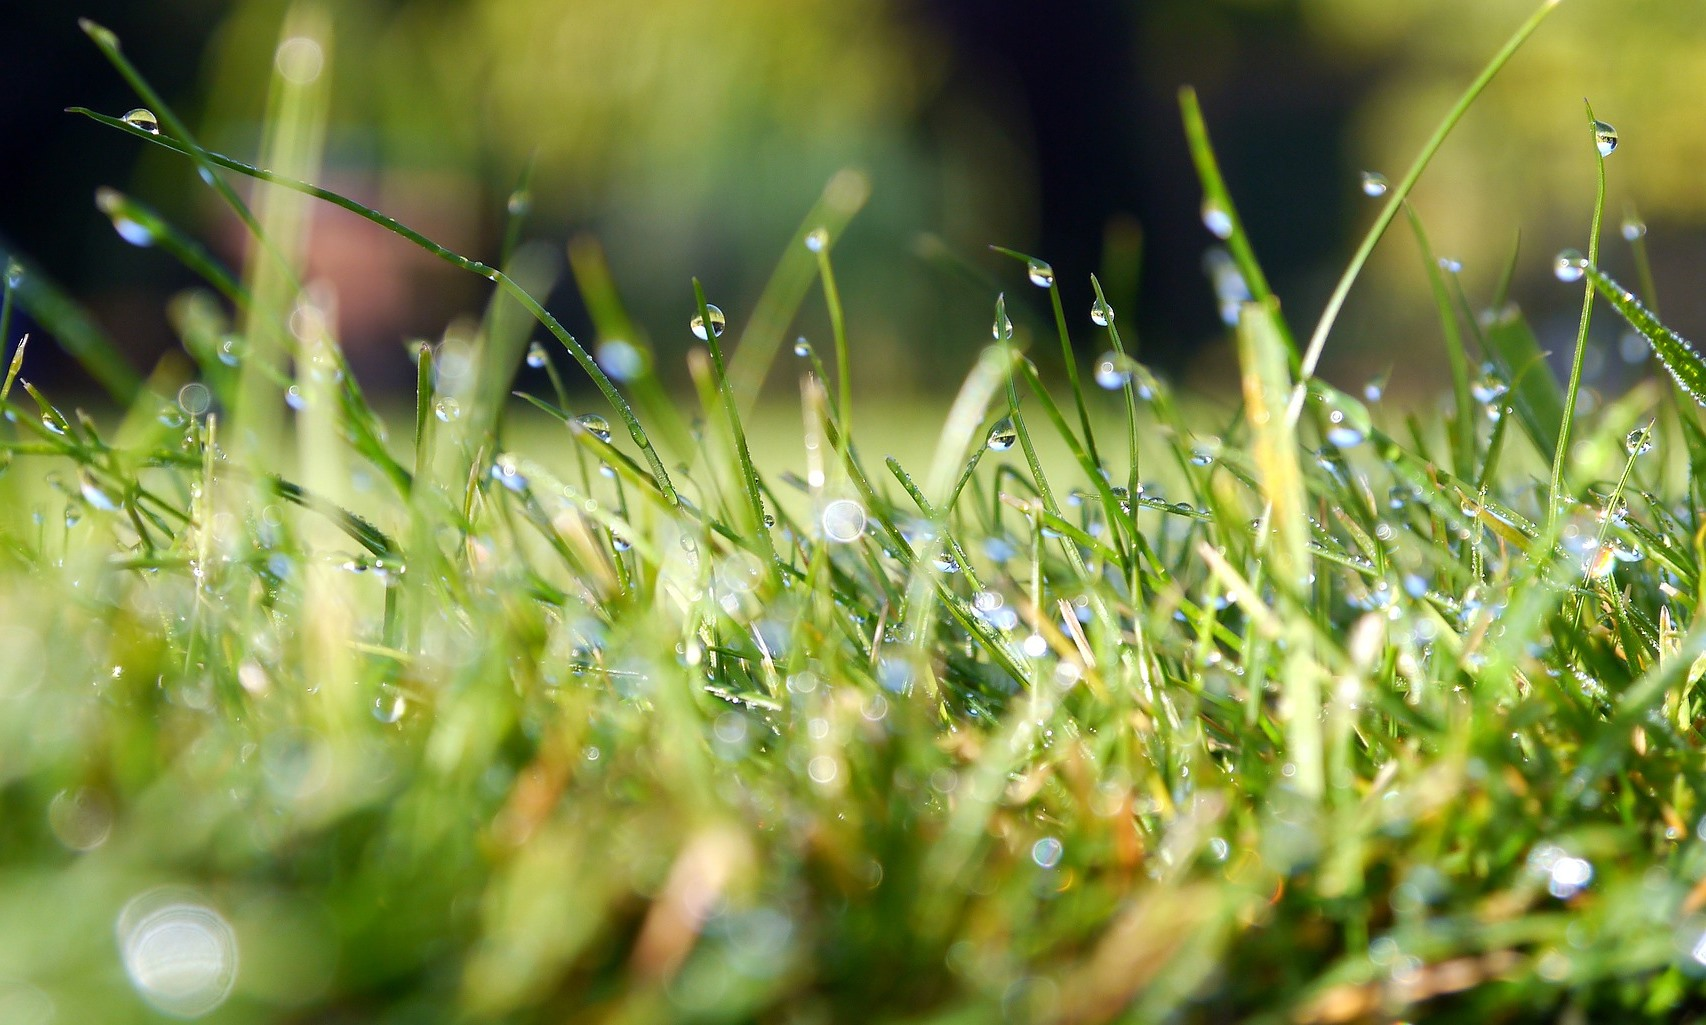 Tips on how to maintain an organic lawn